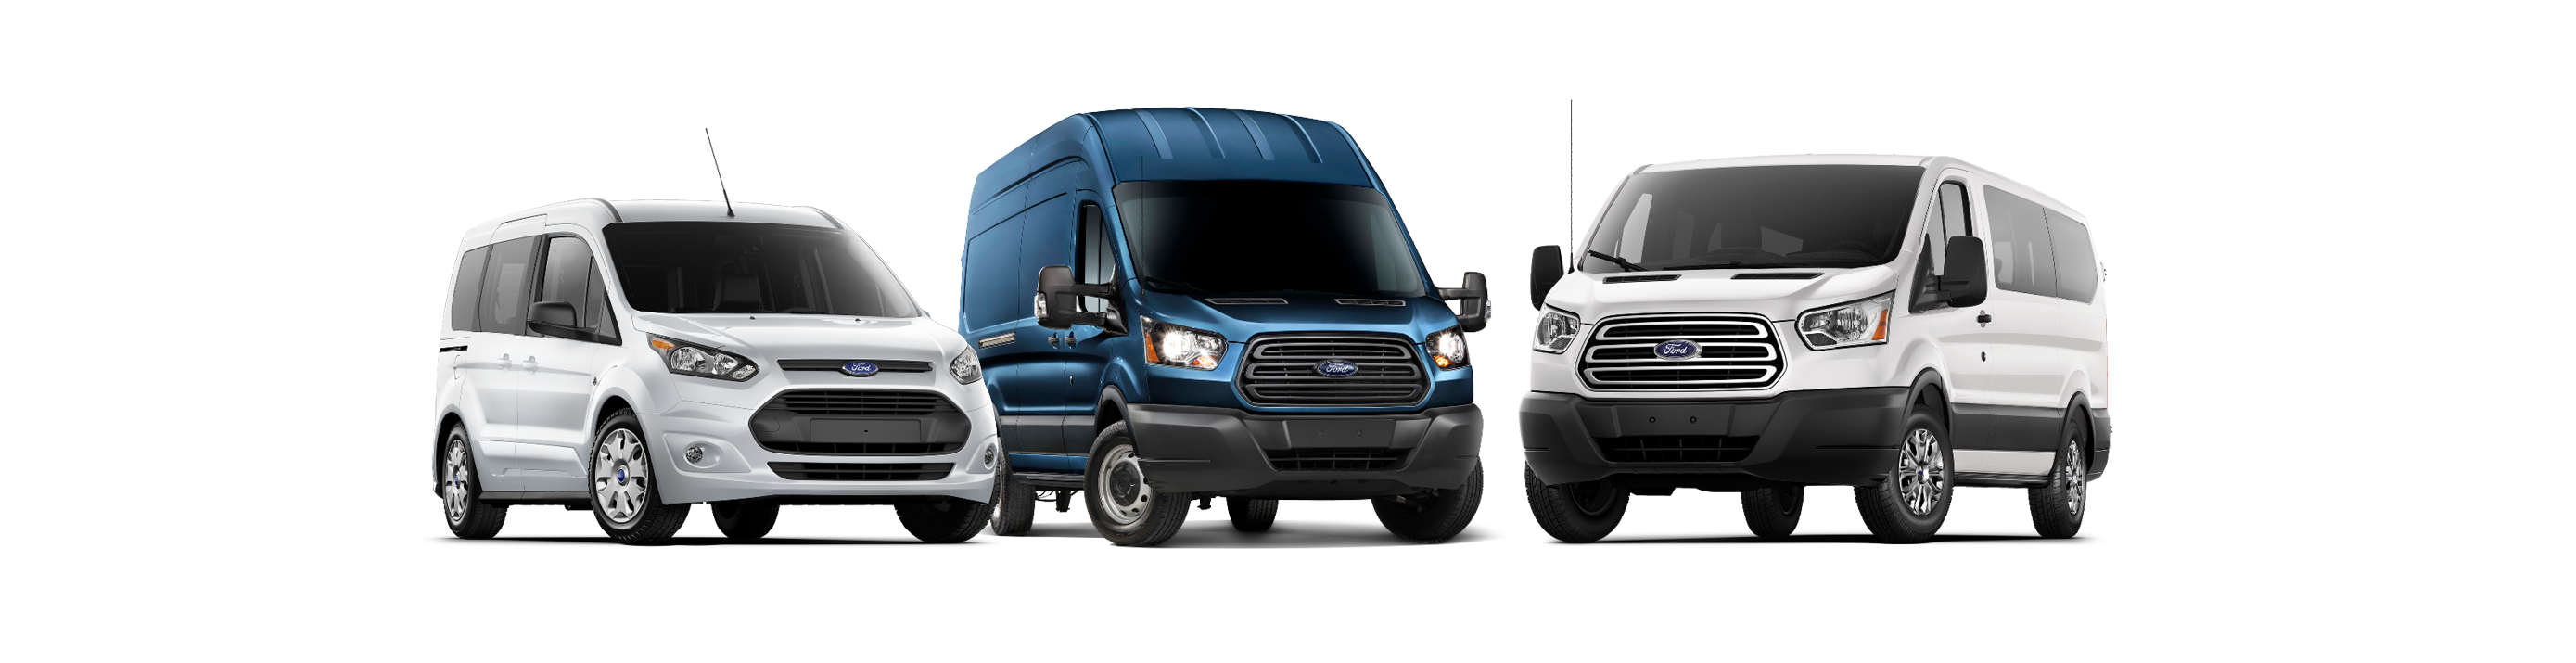 Scout Your Future Ford Transit Van With Our Team